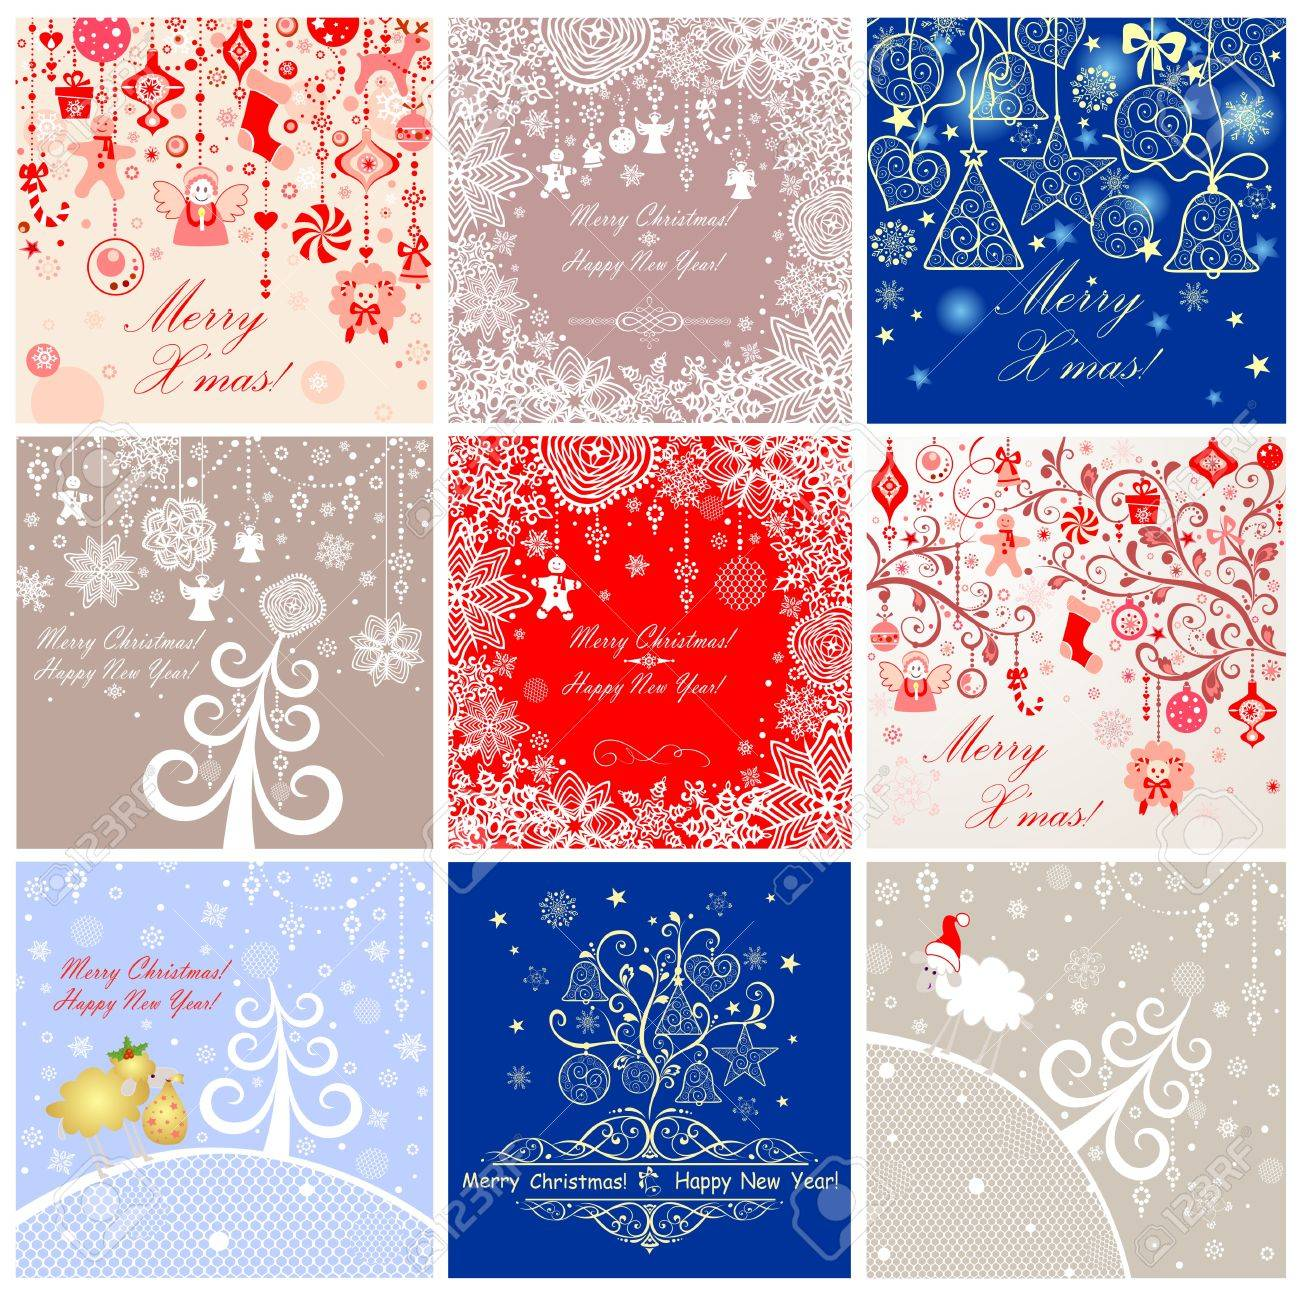 Xmas Retro Funny Greeting Cards Royalty Free Cliparts Vectors And